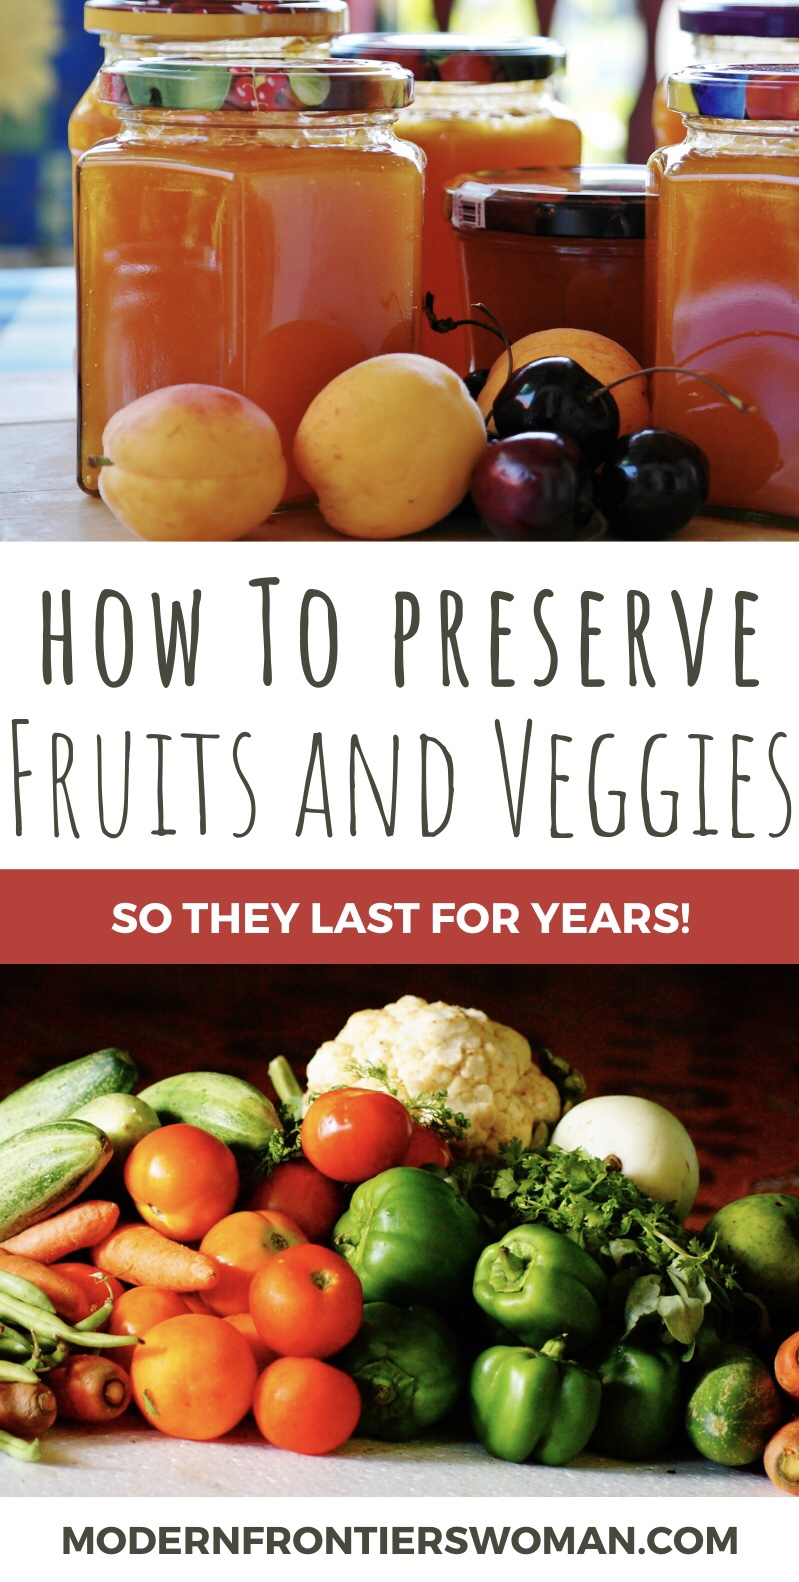 How to preserve fruits and veggies so they last for years